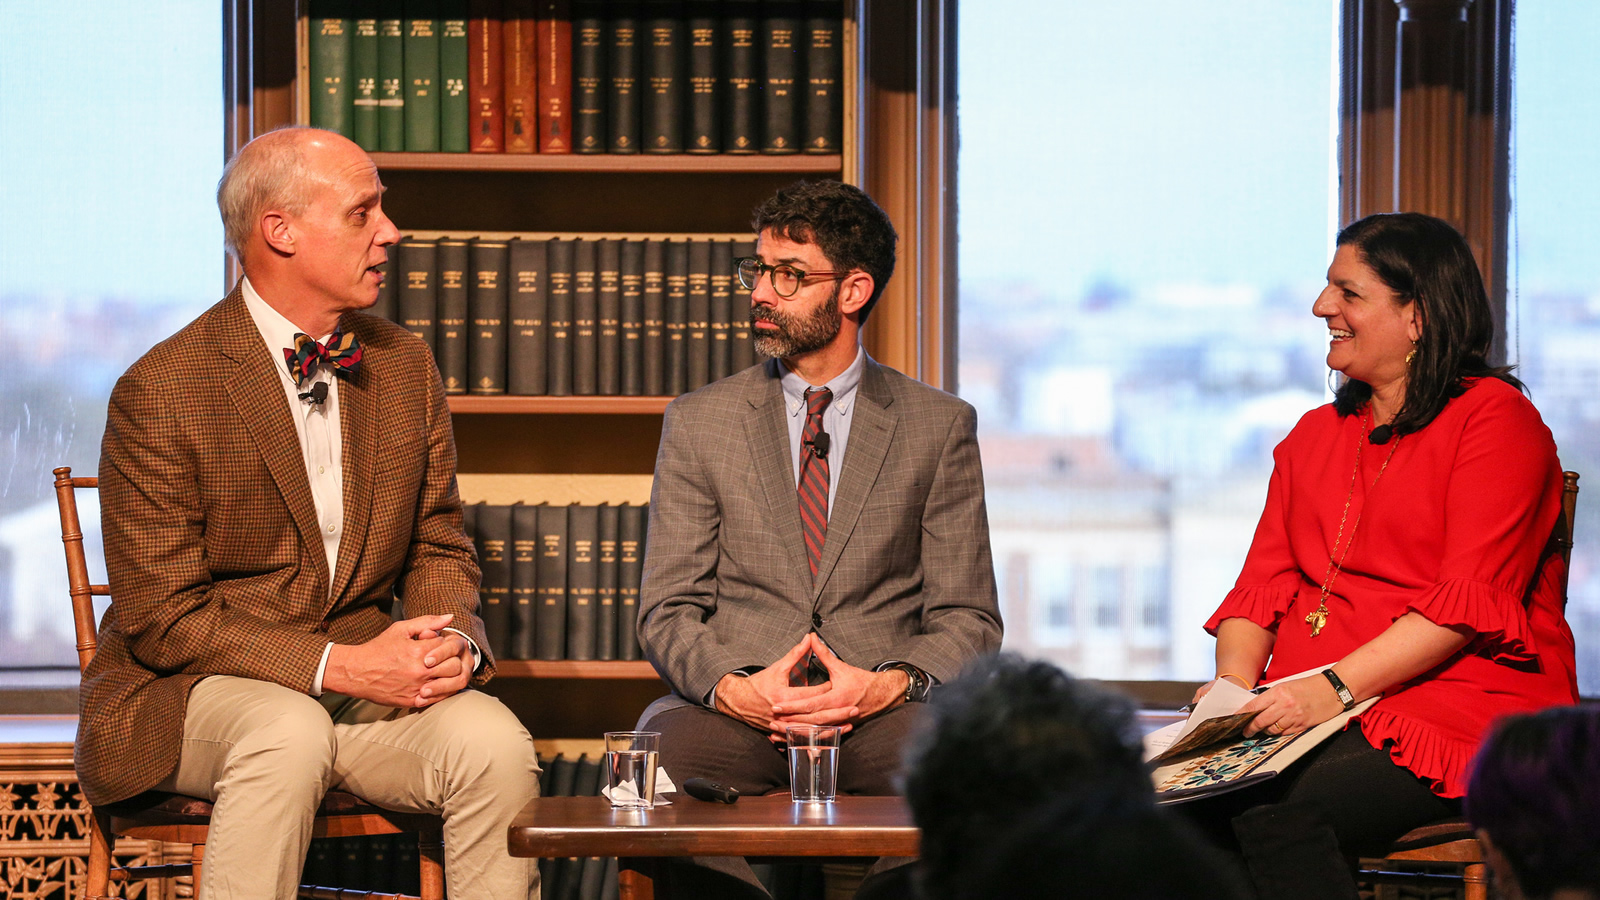 George Steinmetz, Evan Berry, and Indira Lakshmanan discuss how journalism can inspire action on climate change.